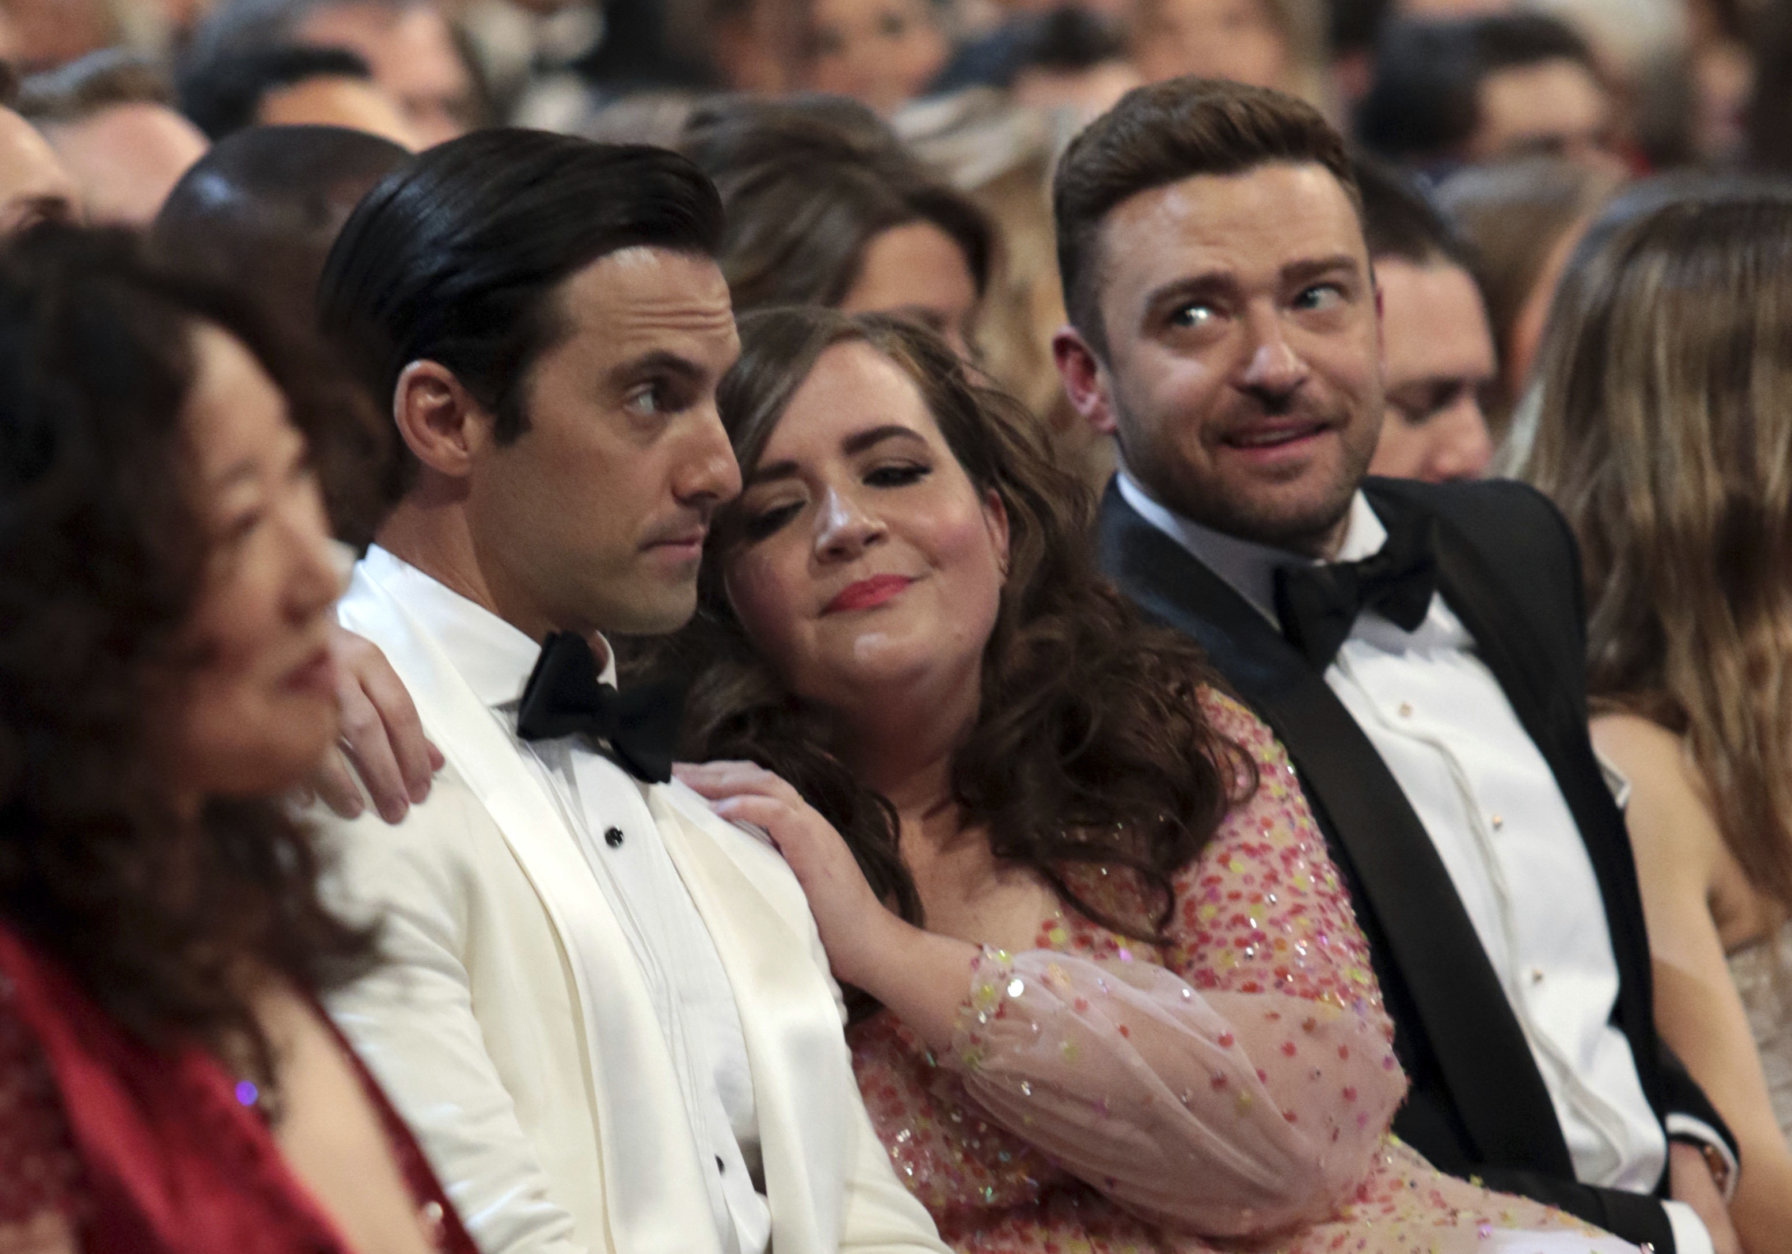 IMAGE DISTRIBUTED FOR THE TELEVISION ACADEMY - Milo Ventimiglia, Aidy Bryant and Justin Timberlake at the 70th Primetime Emmy Awards on Monday, Sept. 17, 2018, at the Microsoft Theater in Los Angeles. (Photo by Alex Berliner/Invision for the Television Academy/AP Images)